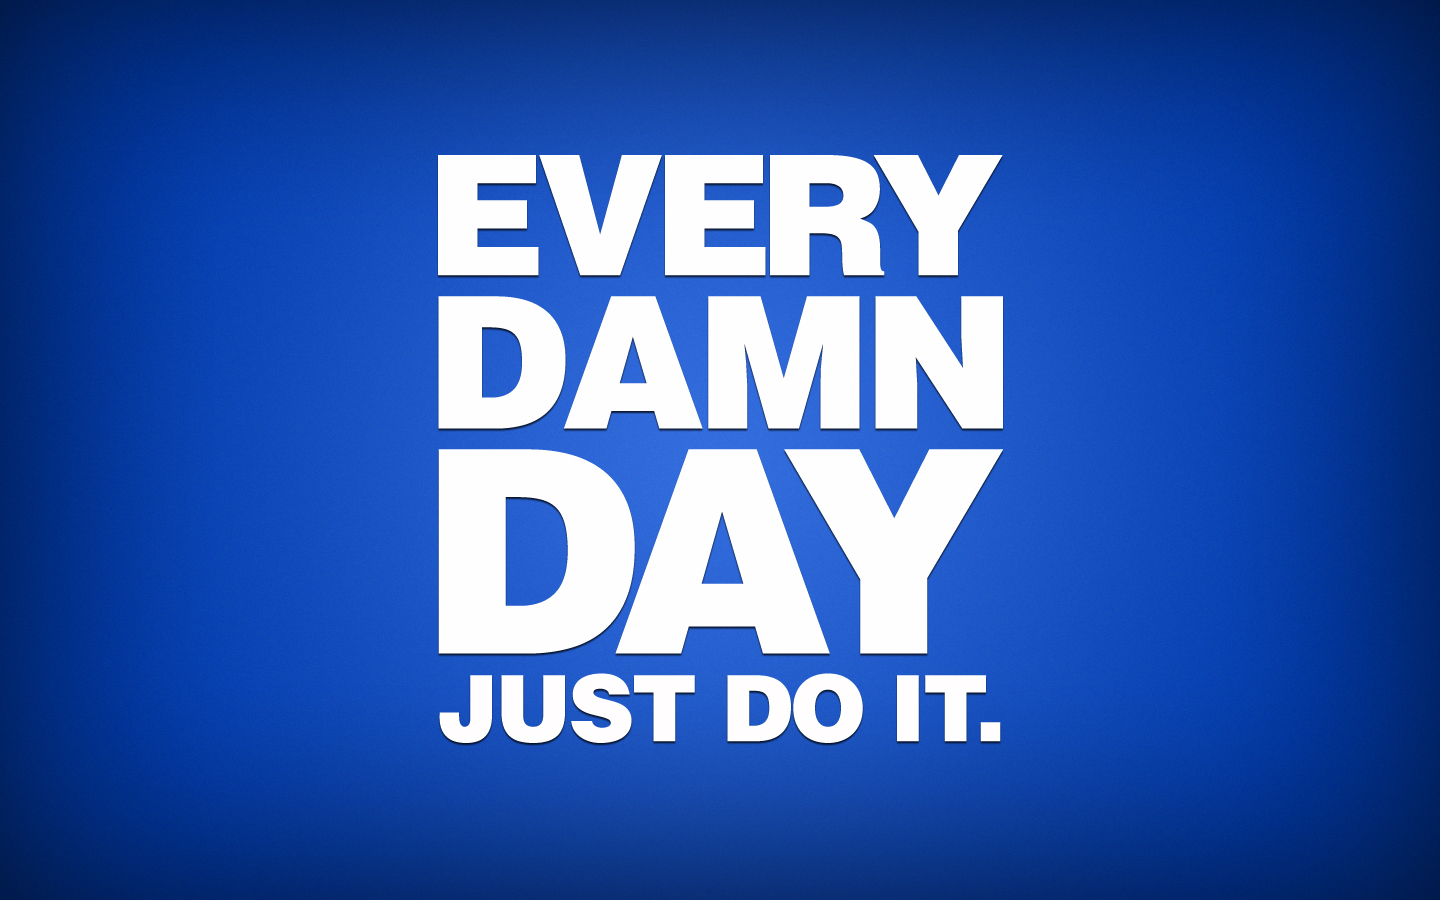 Success Quotes Hd Wallpapers 1080p Nike Just Do It Wallpaper 1440x900 71350